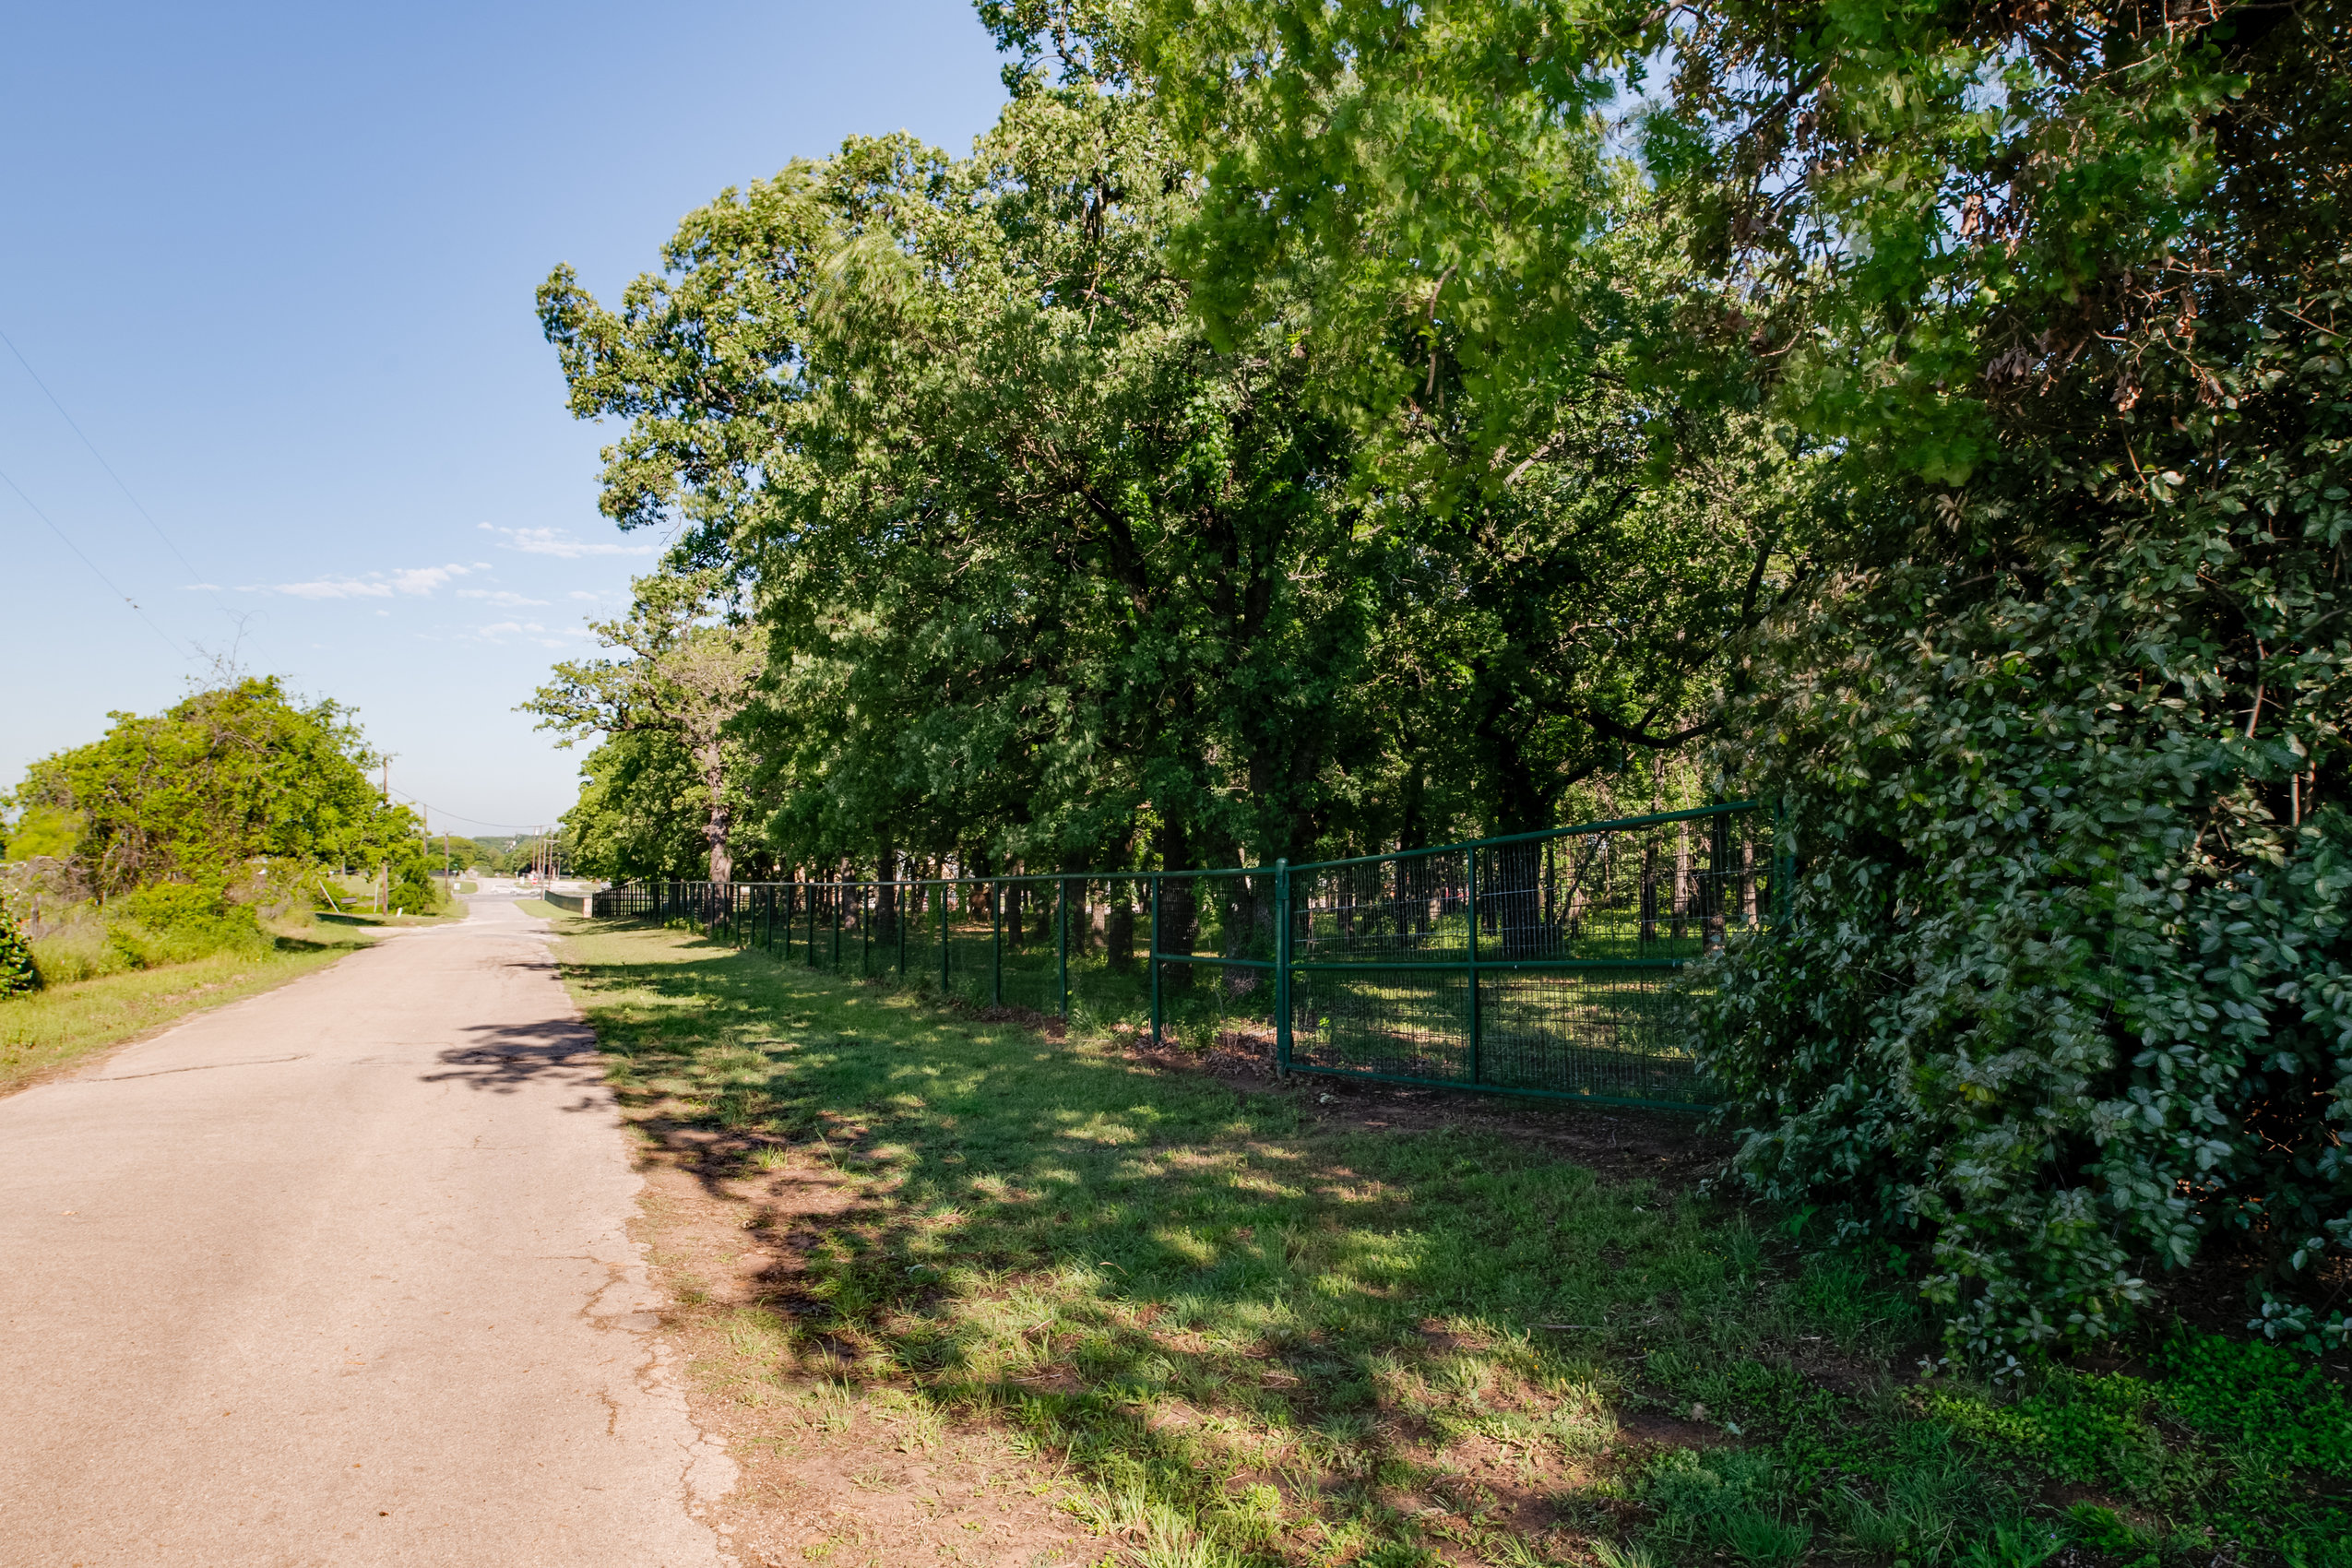 291 Lee Lane Weatherford Tx On 10 Acres For Sale